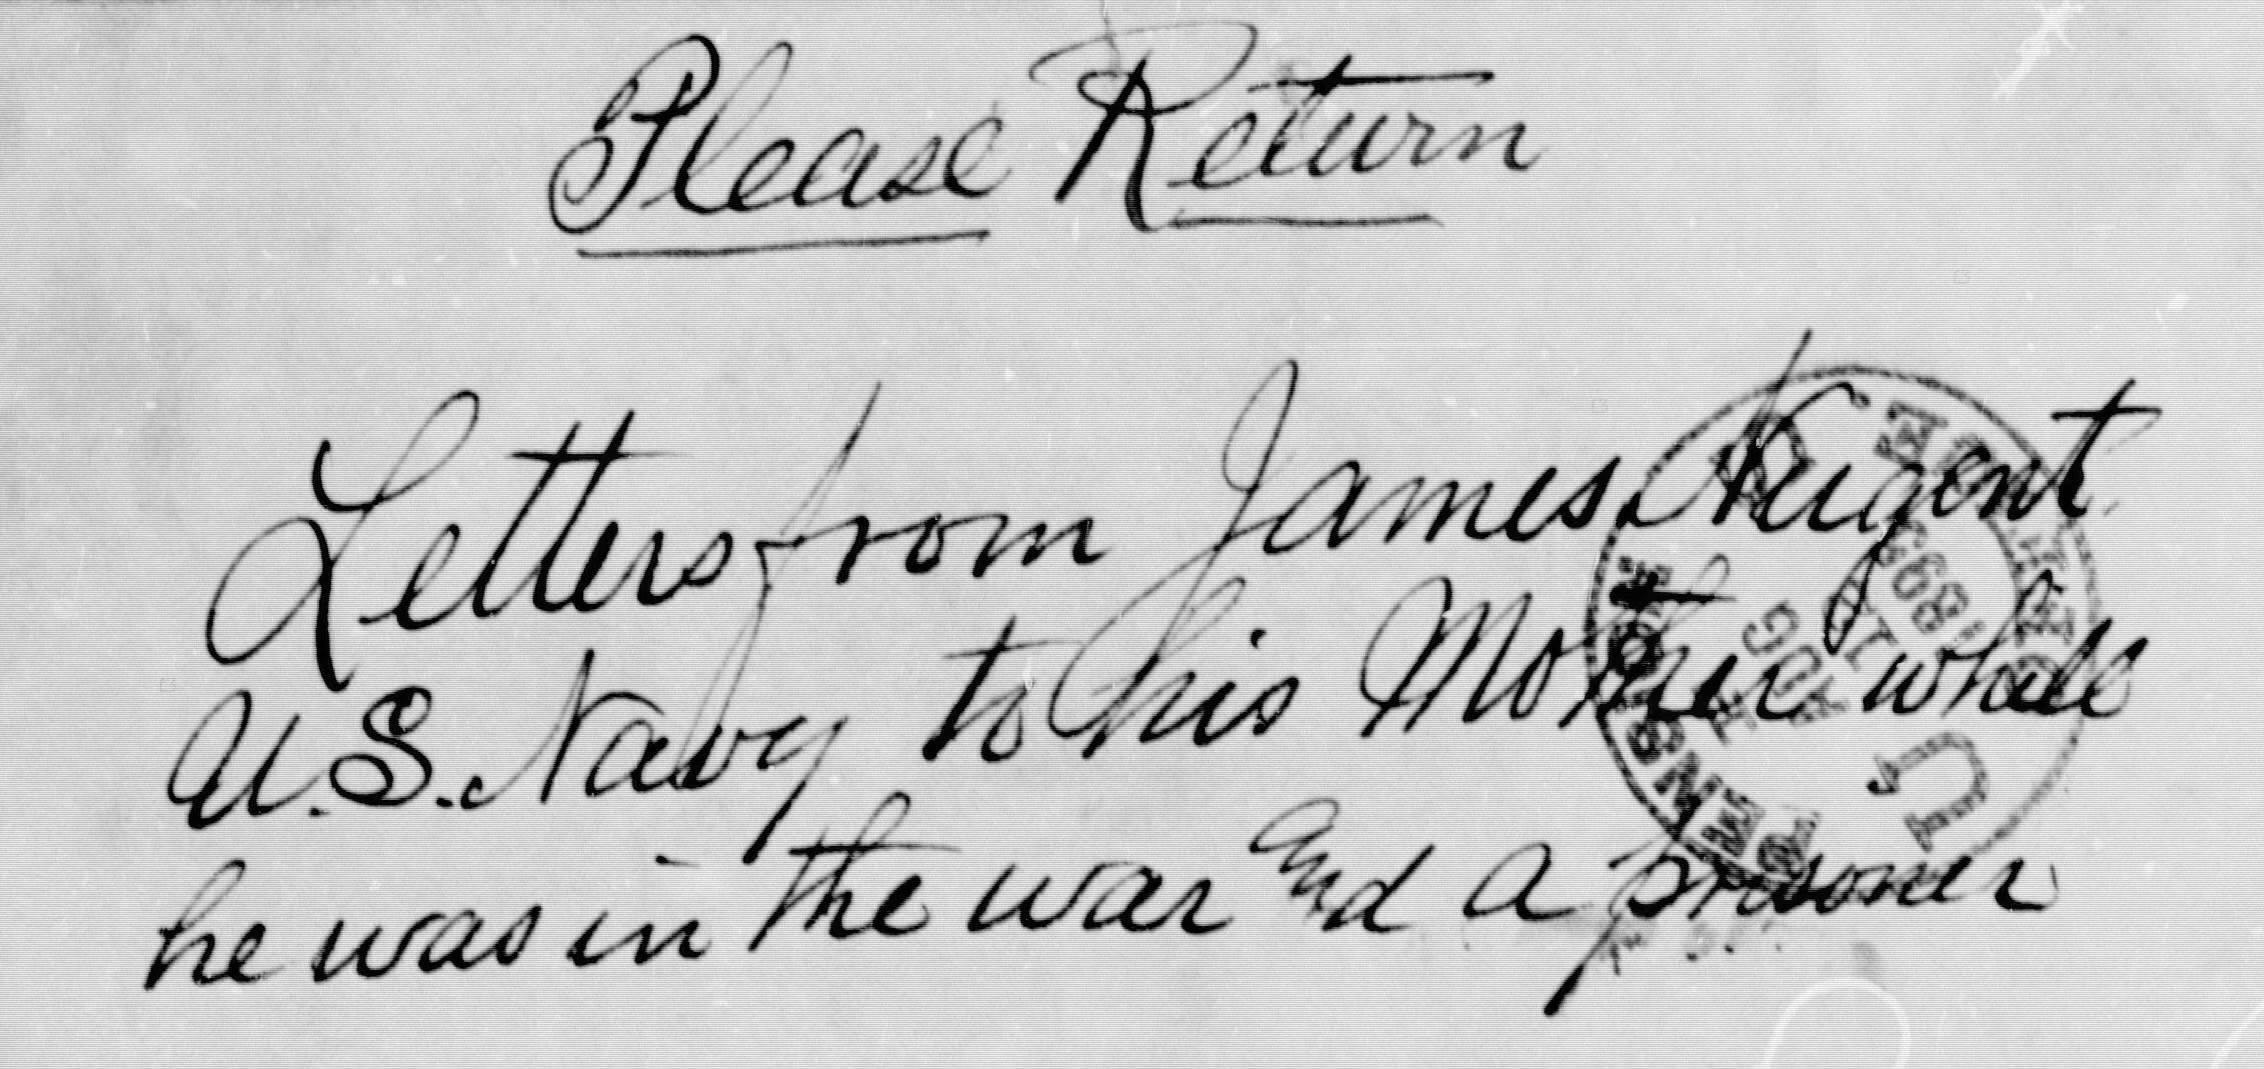 Inscription on package of letters in James NUgent file, asking they be returned (NARA/Fold3)